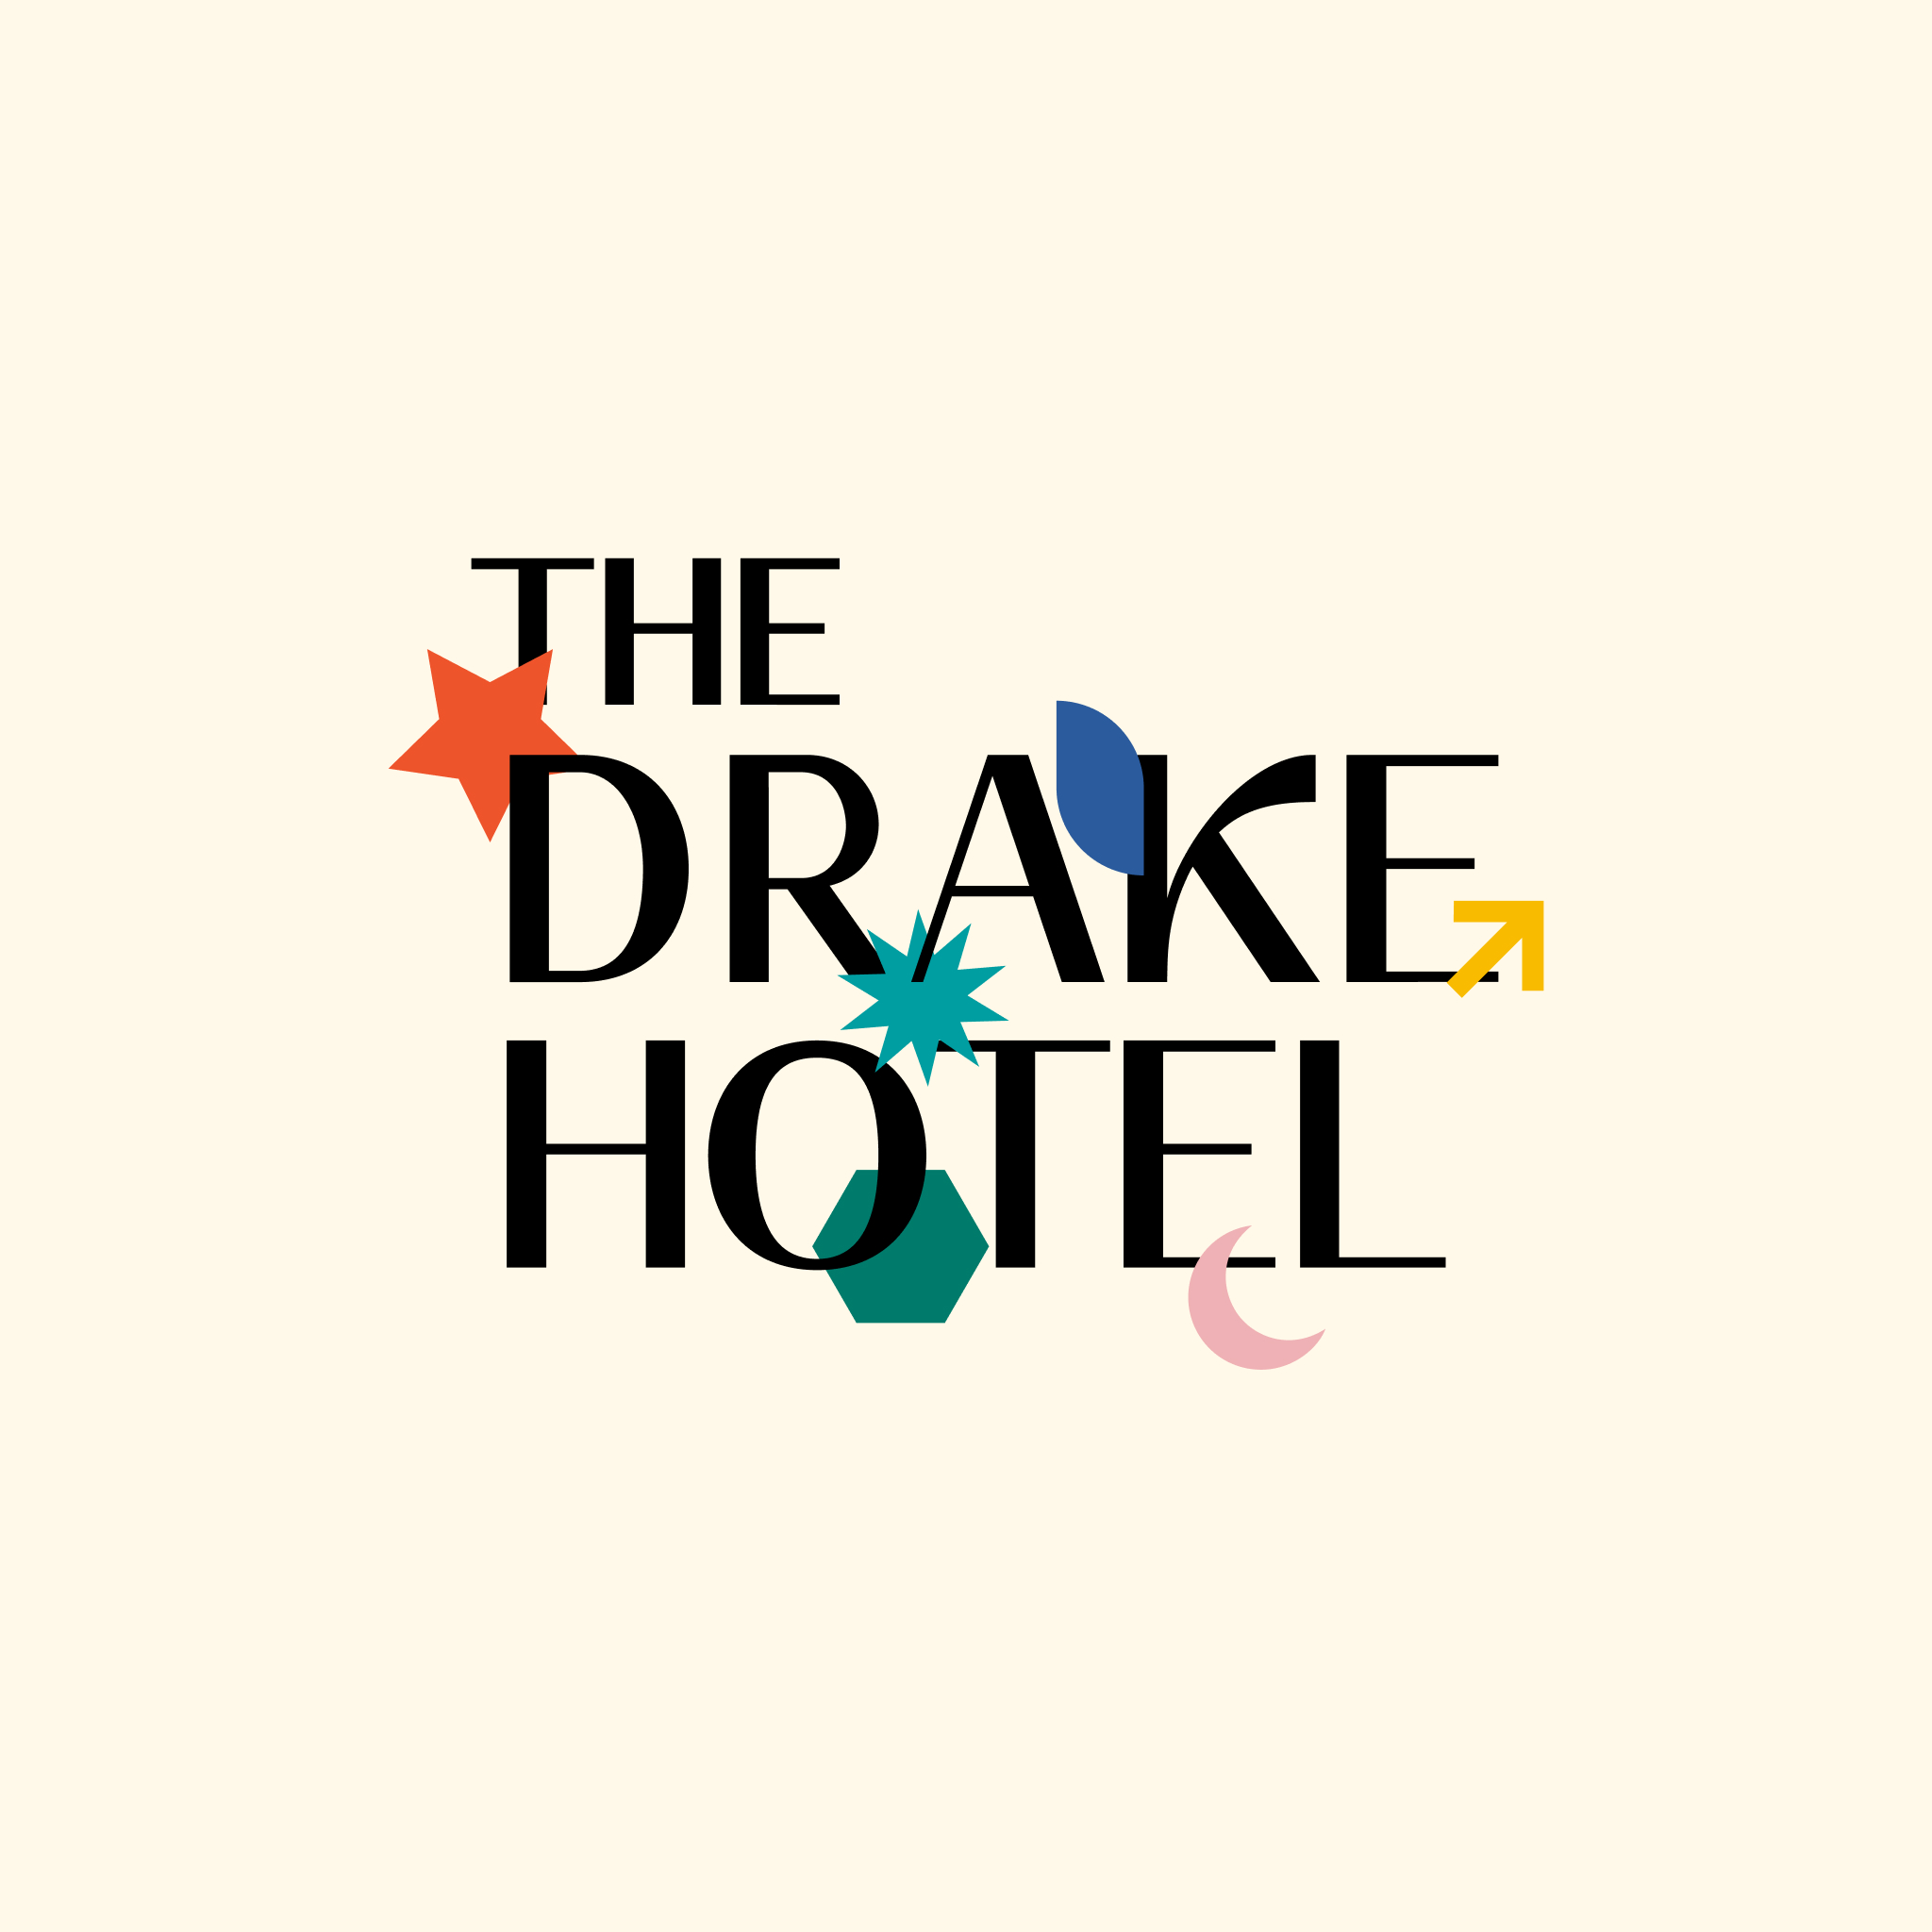 After extensive research of the Drake Hotel, Their strong brand presence did not match the visual identity, therefore my goal was to establish a fluid and distinguishable brand identity to match its constructed culture. Throughout my logo iterations, using a modular logo among different shapes allowed for distinctive uses. In addition, each activity of the hotel was able to be represented through the shape variations.